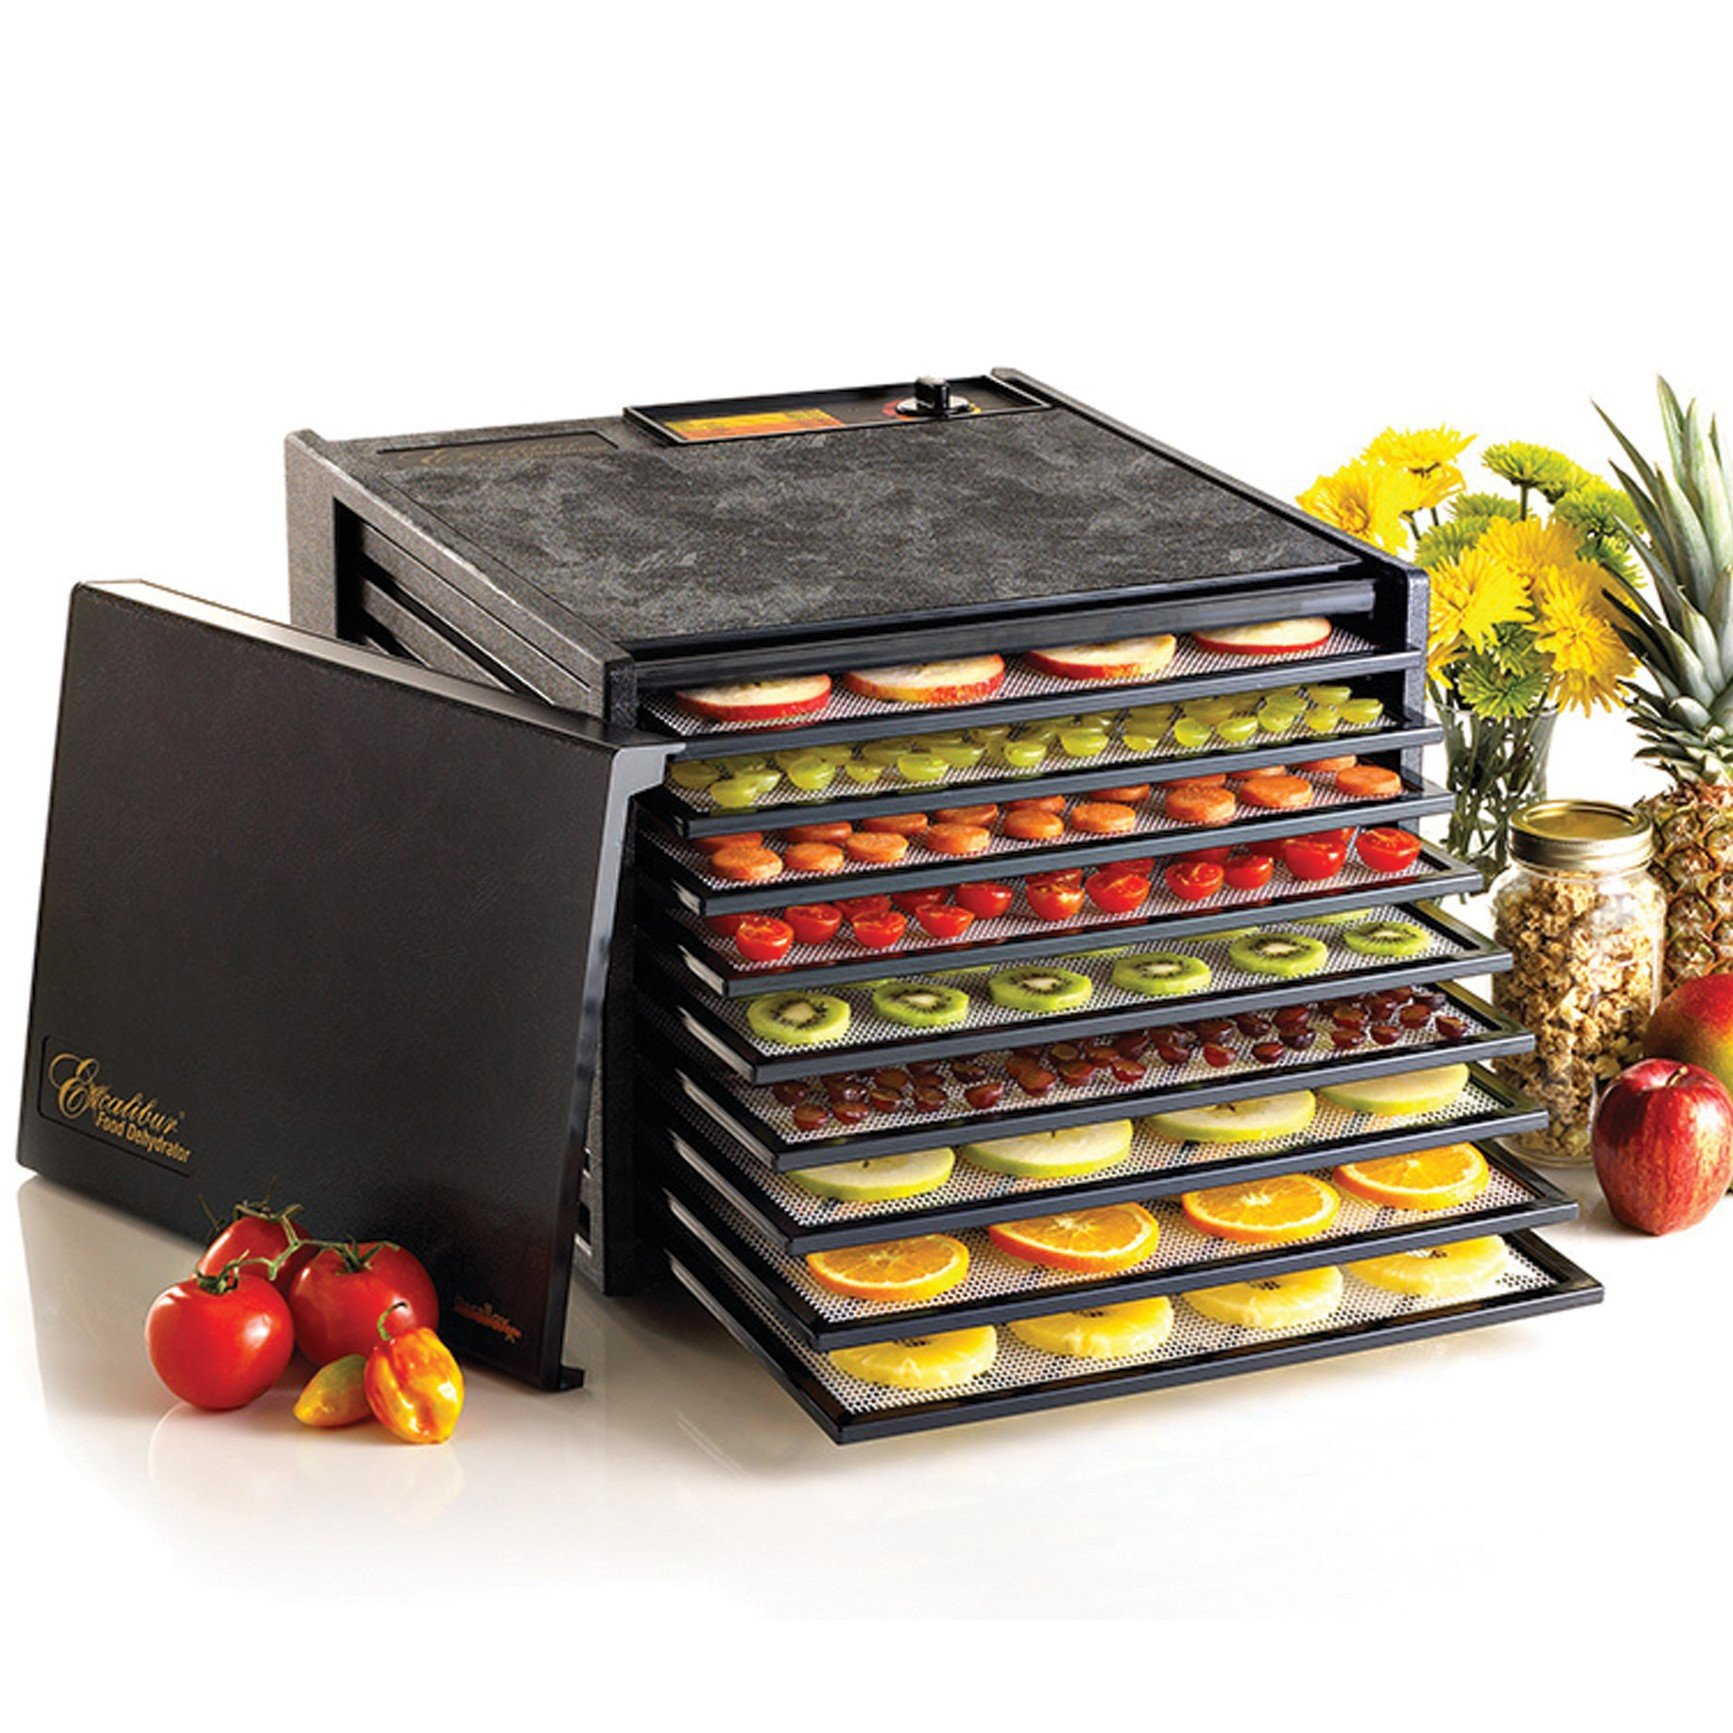 Excalibur 3900B 9 Tray Deluxe Dehydrator, Black by Excalibur